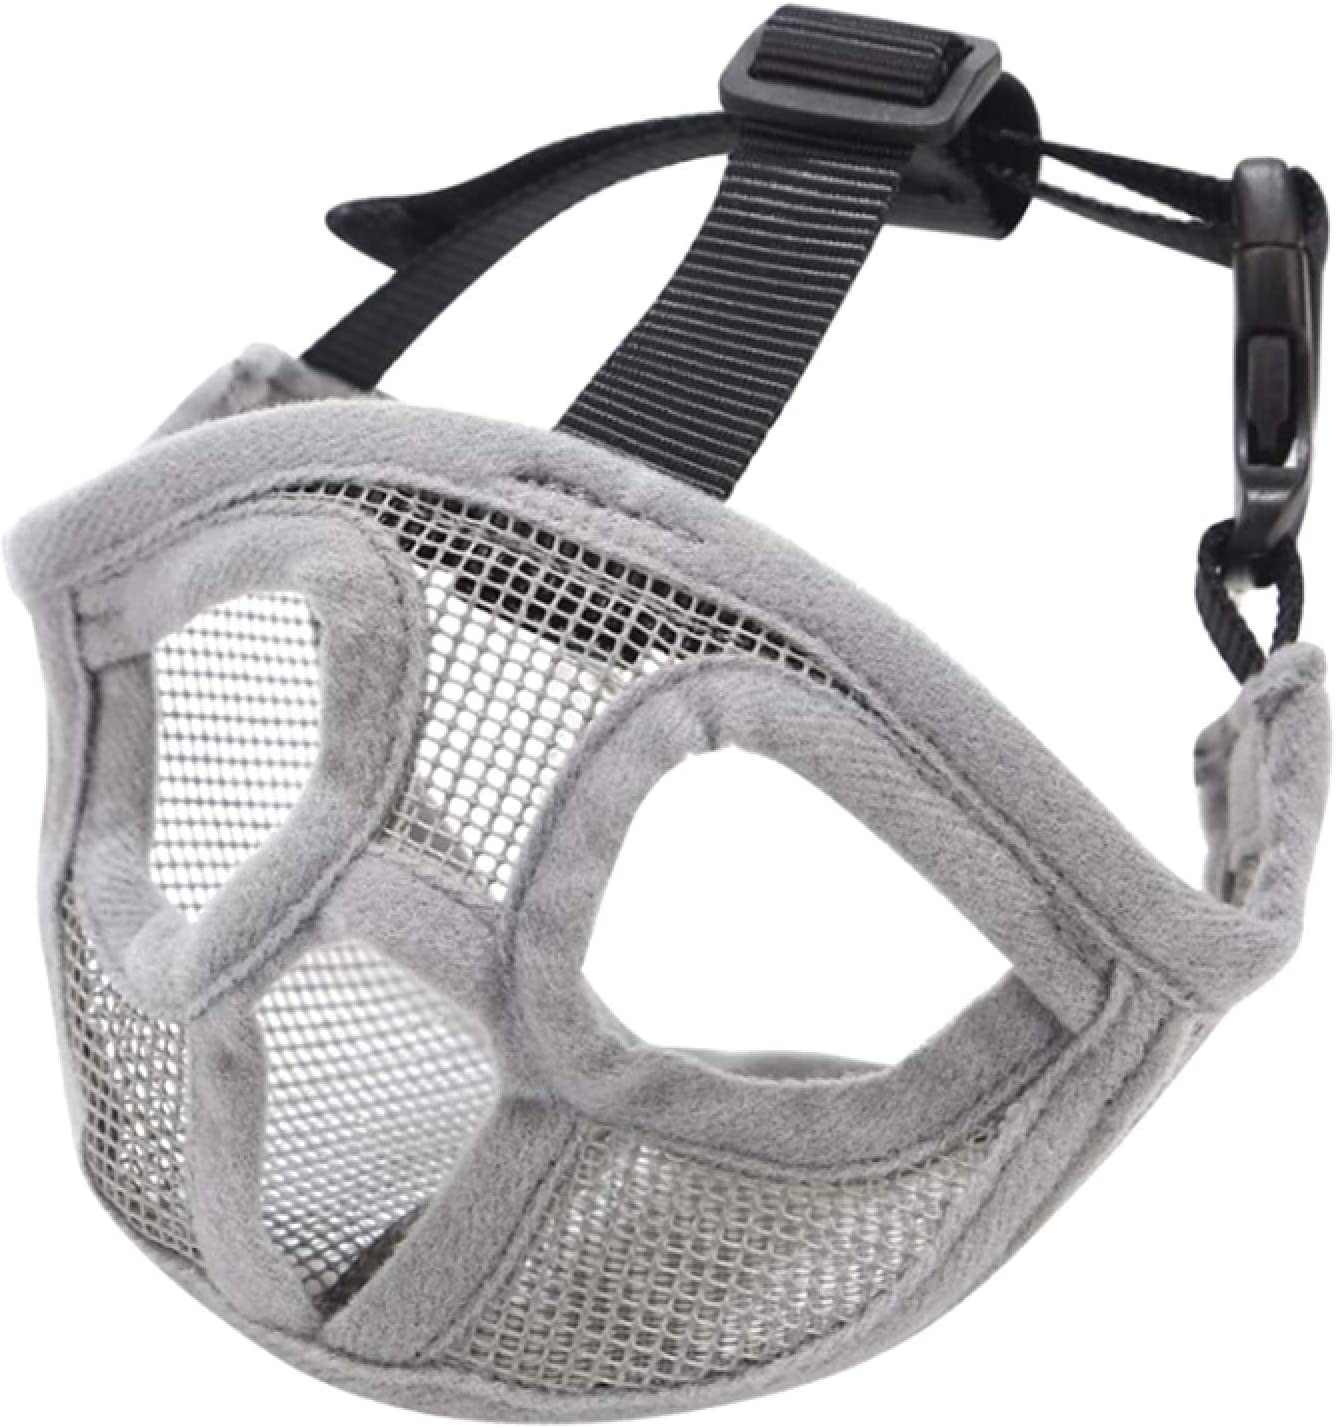 Safety Pet Bulldog Mouth Superlatite Cover Mask Cove Ranking TOP2 Supplies,Full Net